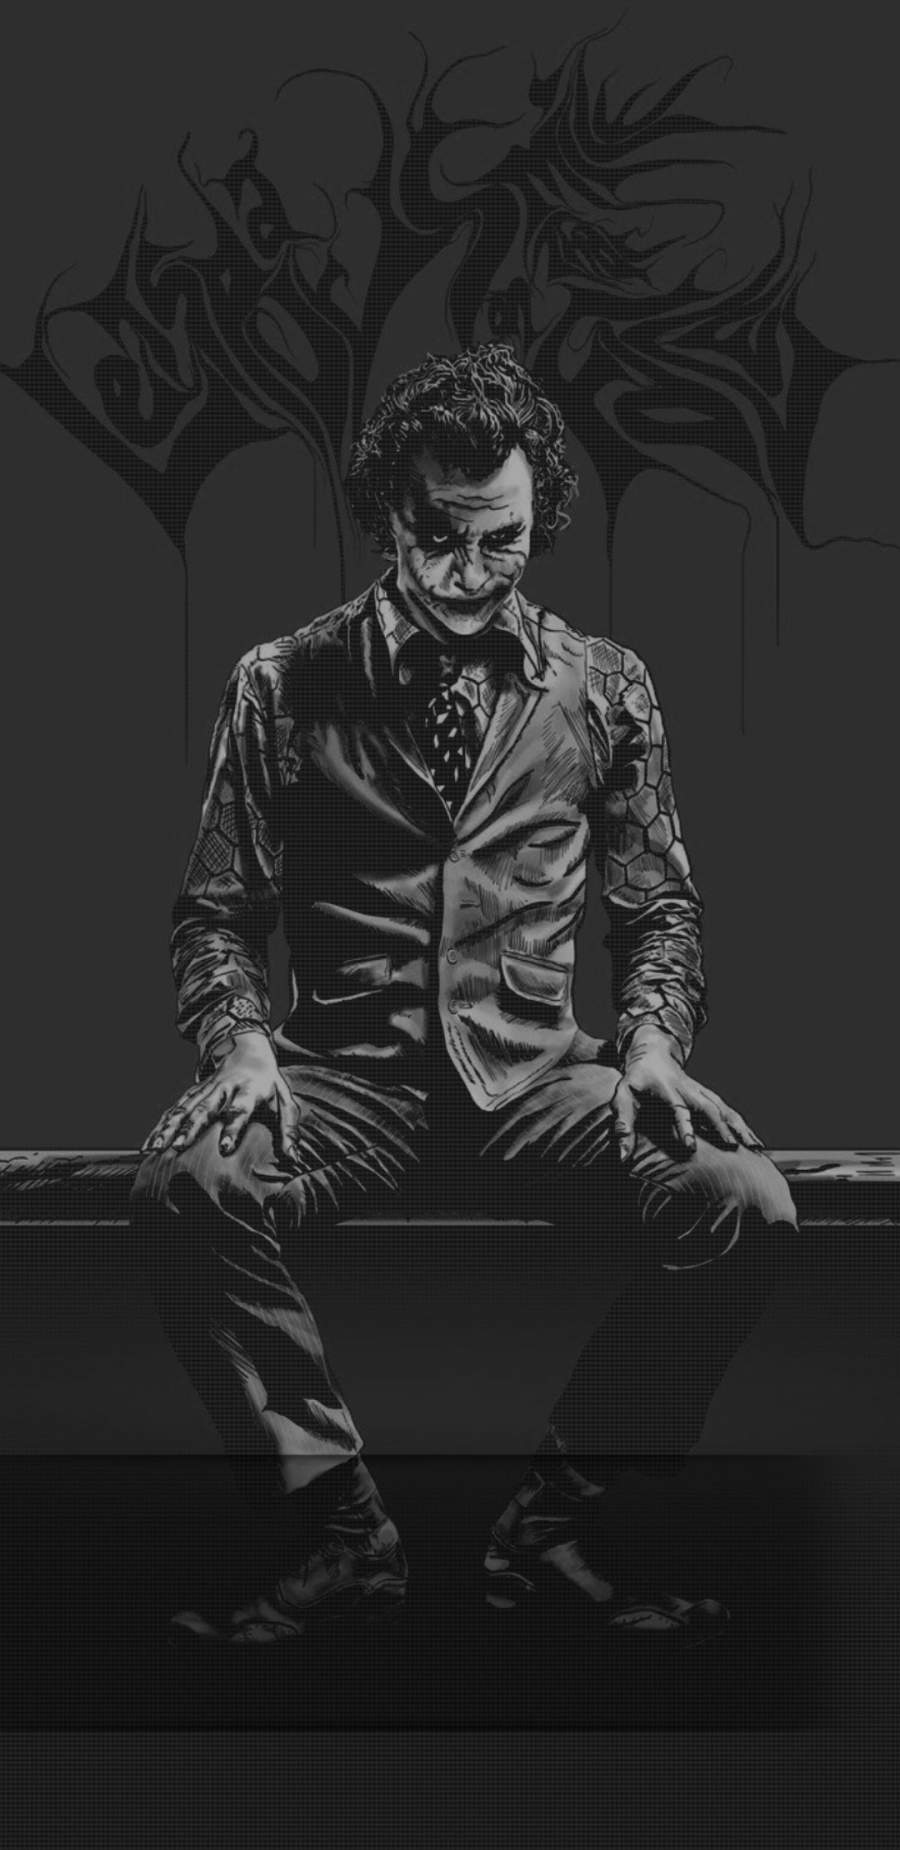 Joker Darkness iPhone Wallpaper